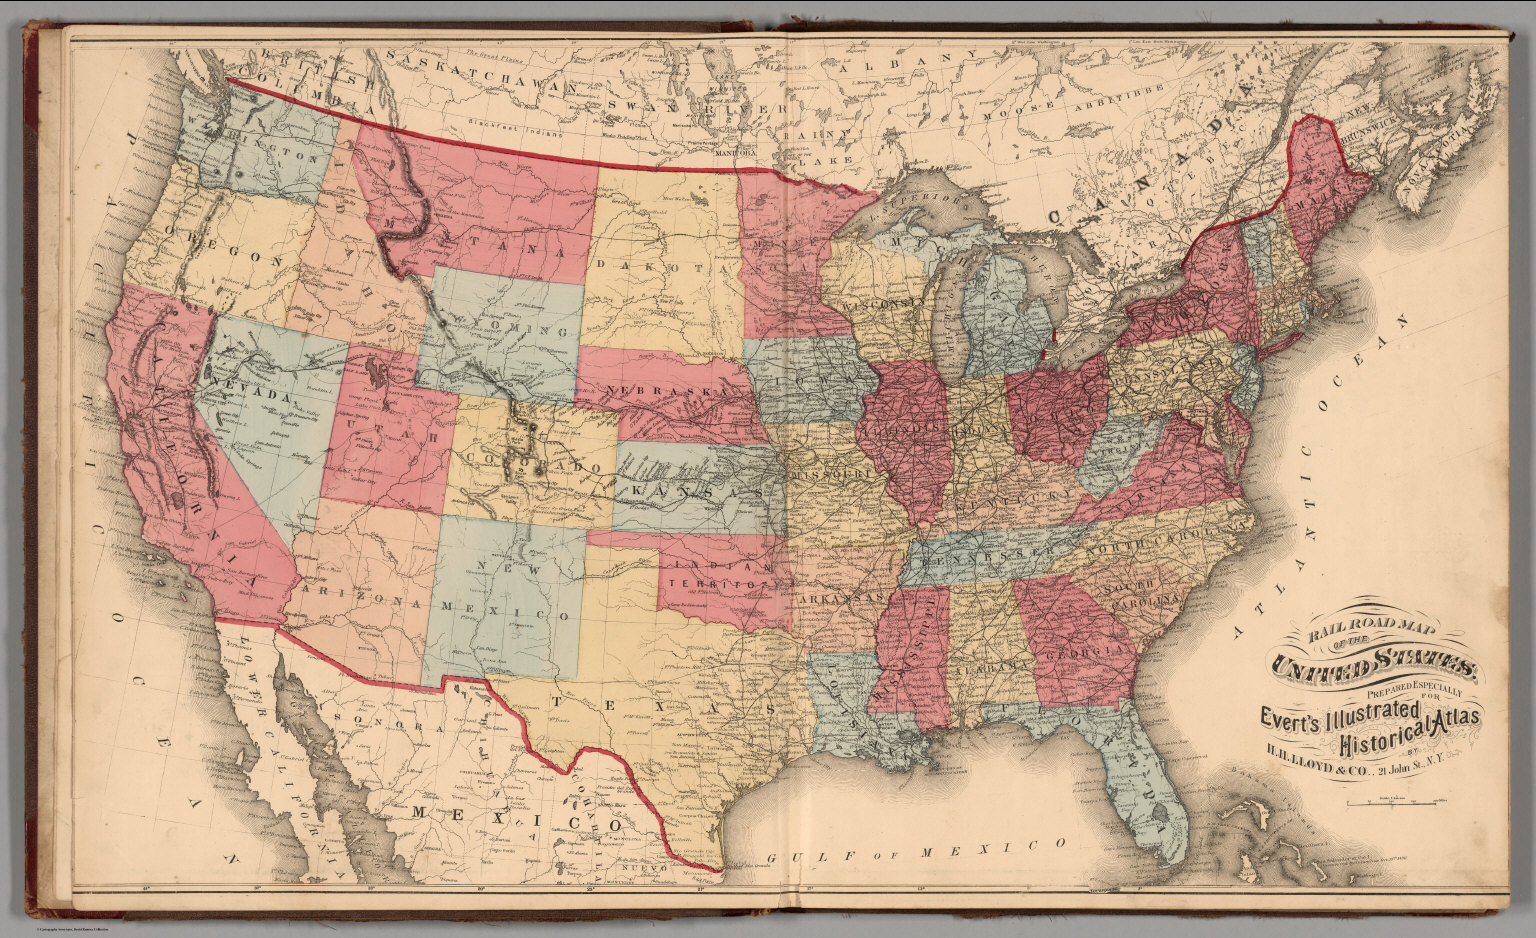 Railroad Map Of The United States David Rumsey Historical Map - United states map atlas